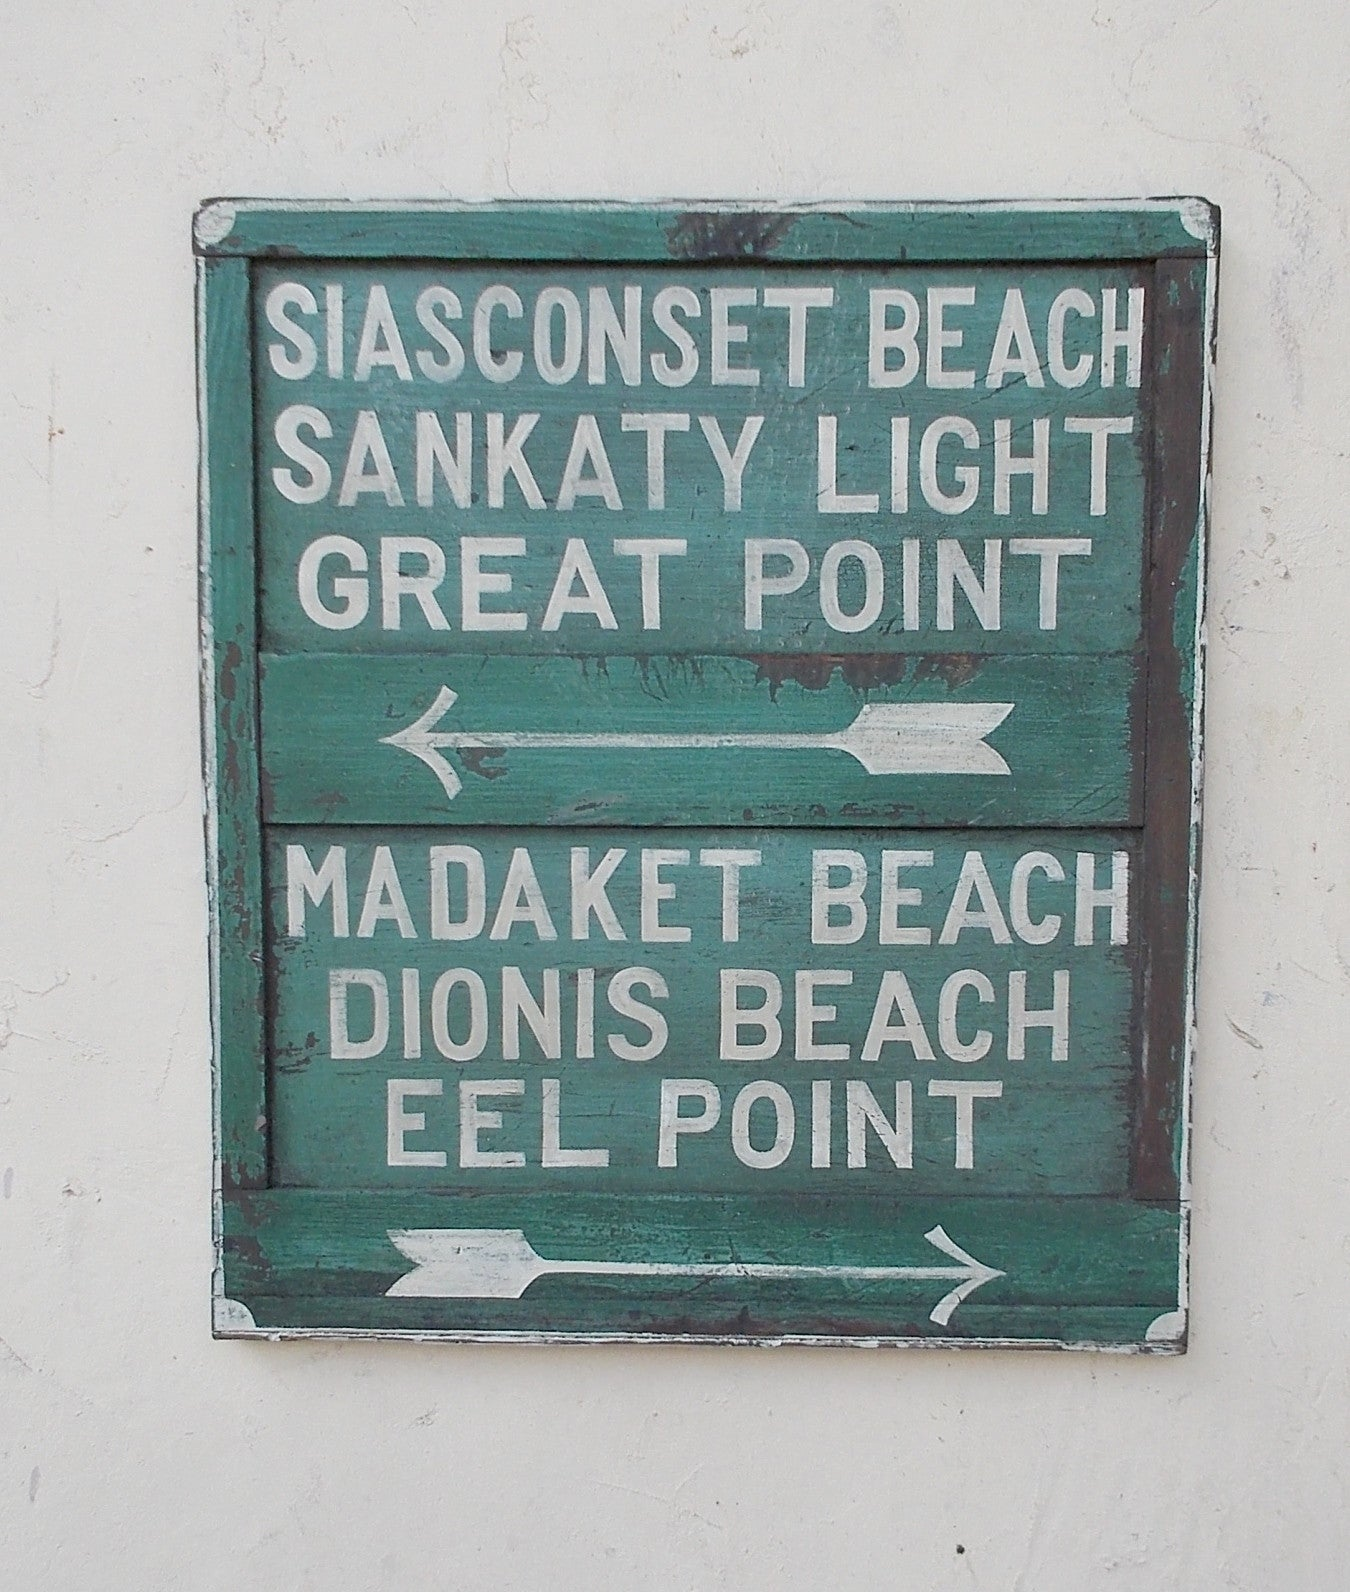 Nantucket Beaches sign